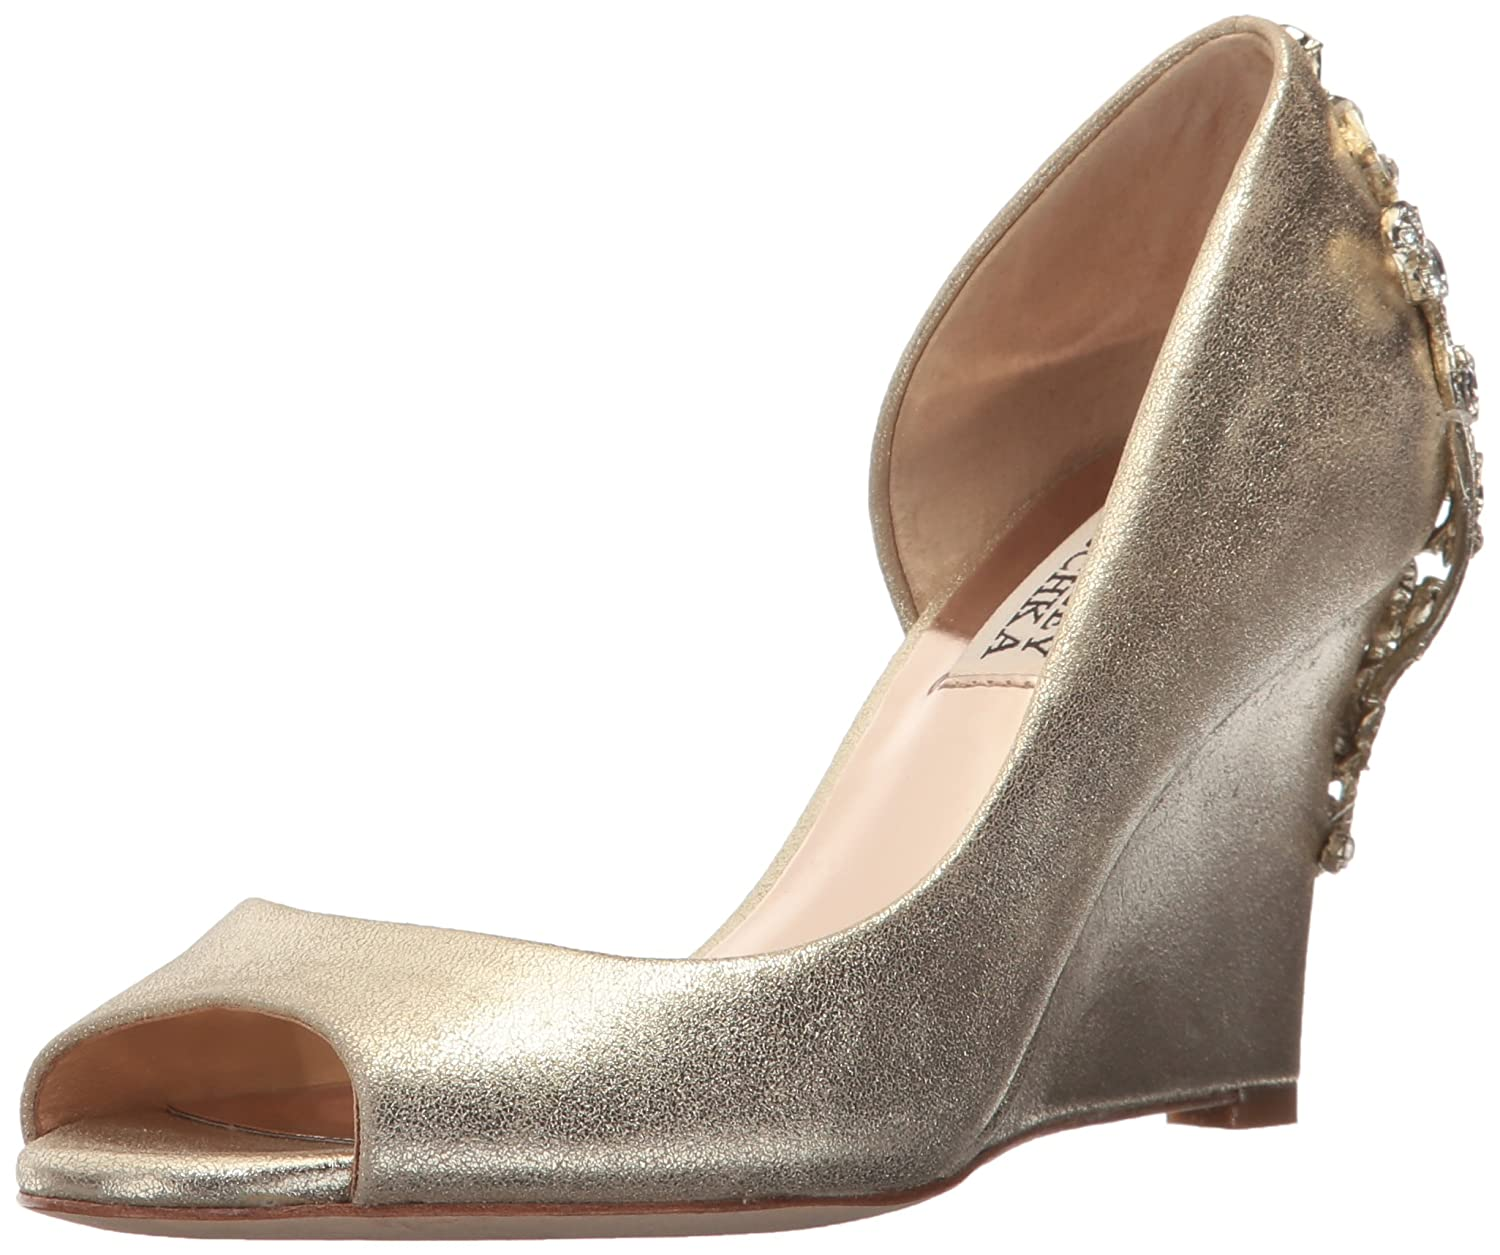 Badgley Mischka Women's Meagan II Pump B0734ZKT1J 6 B(M) US|Platino